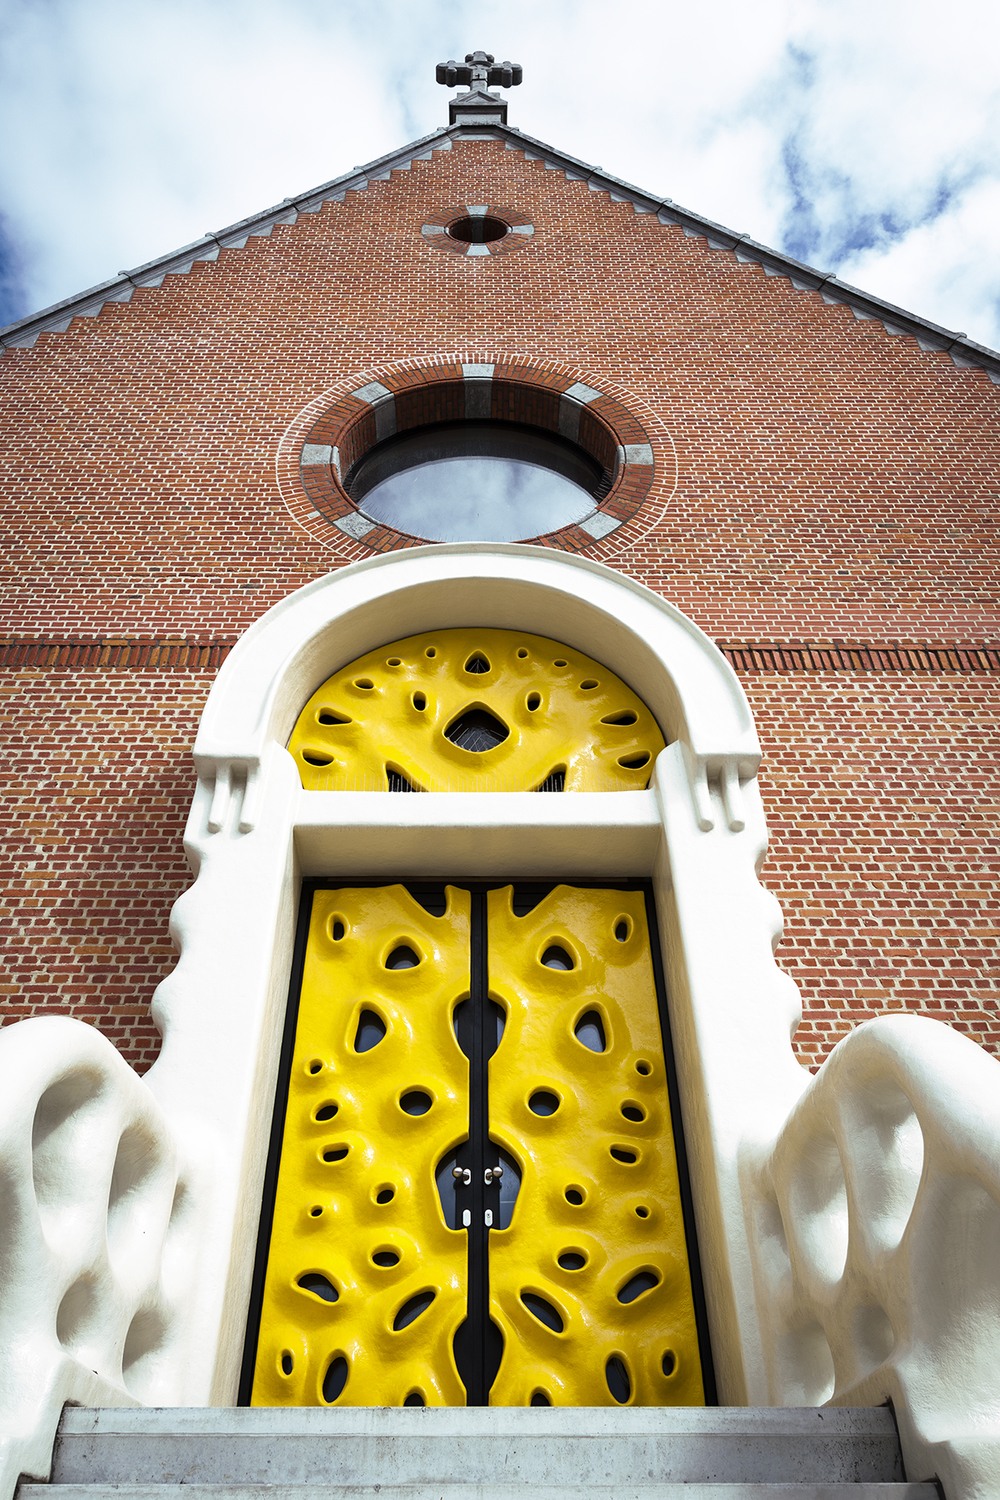 Imagrod-Nick-Ervinck-Studio-Yellow-Door-Sculpture-Church-3.jpg